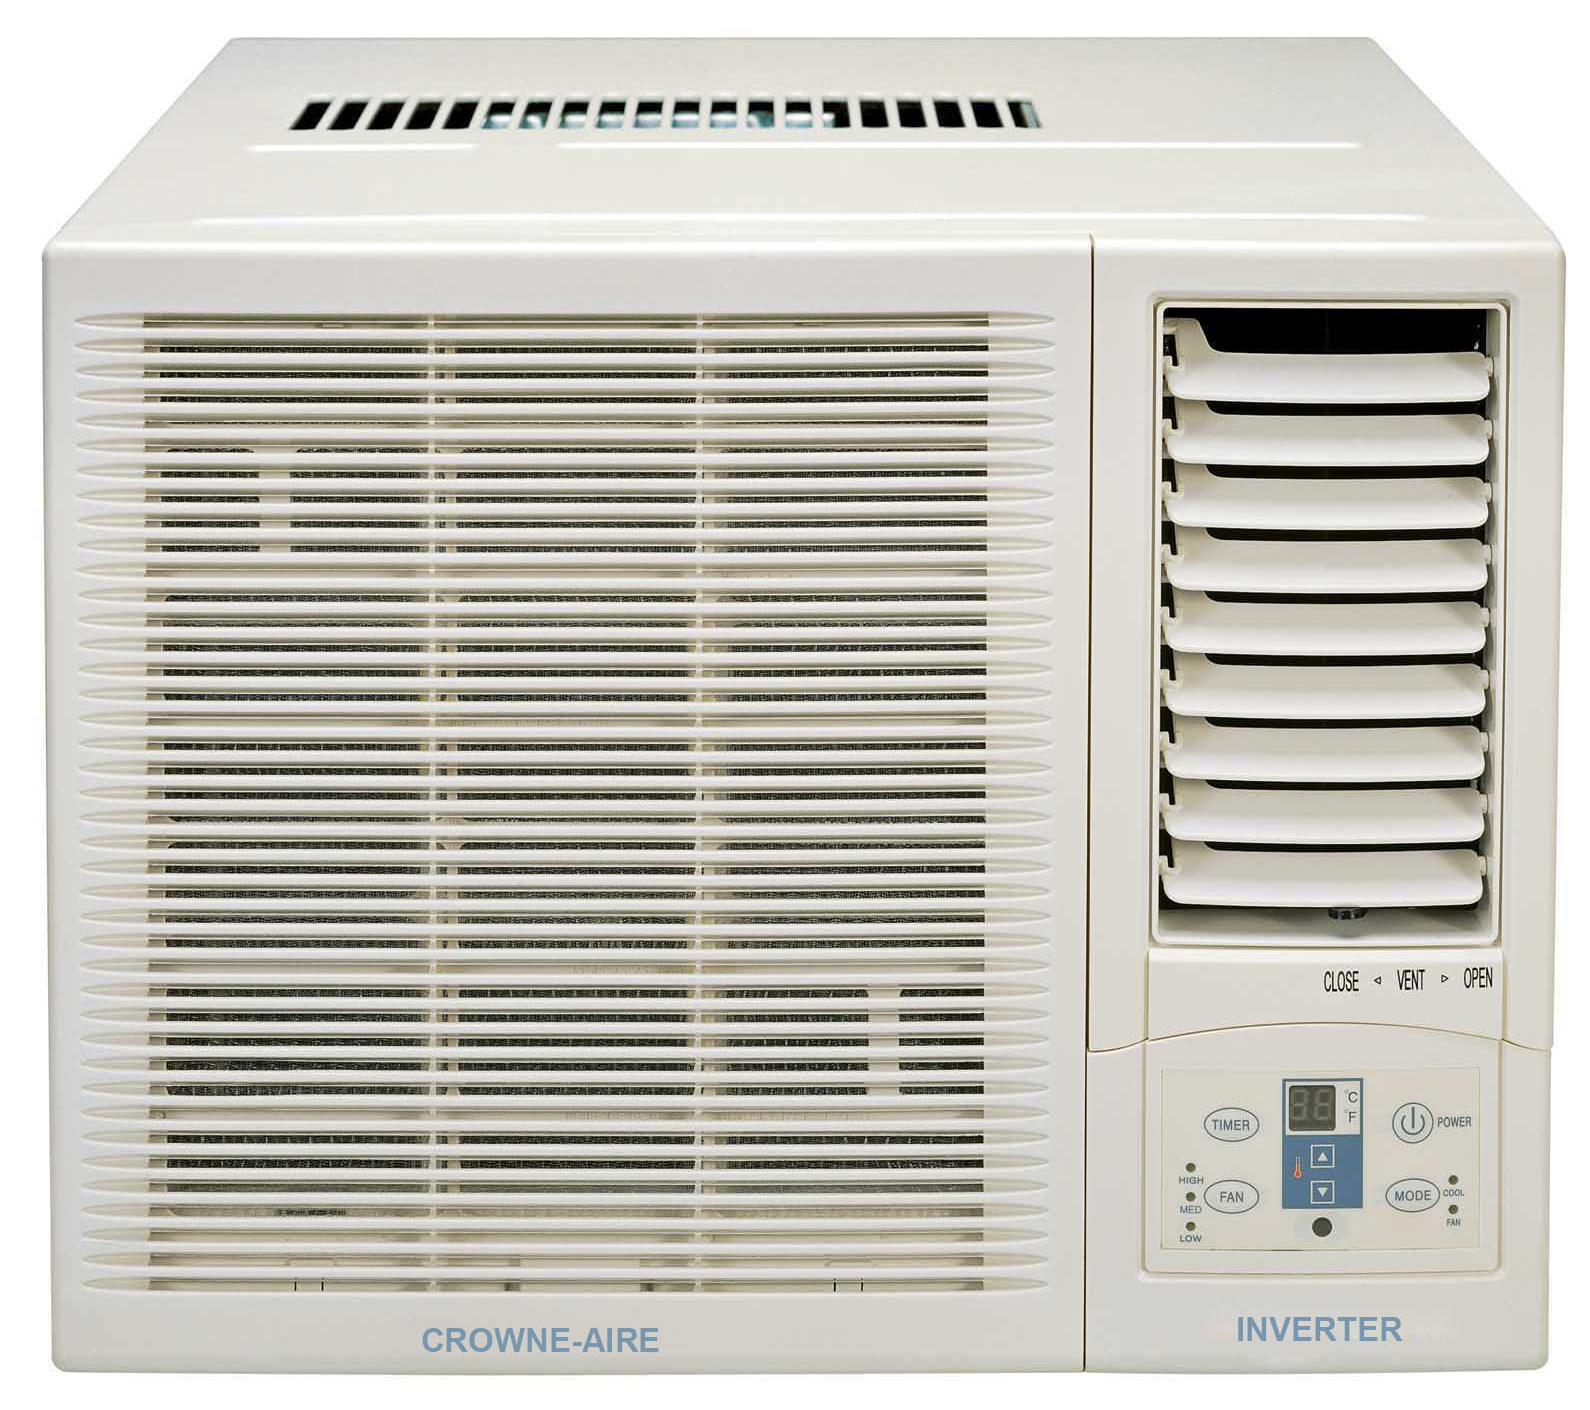 #50697B Crowne Aire 1.5 Hp Window Type Inverter Aircon Cebu  Best 4823 Inverter Window Ac photos with 1590x1410 px on helpvideos.info - Air Conditioners, Air Coolers and more